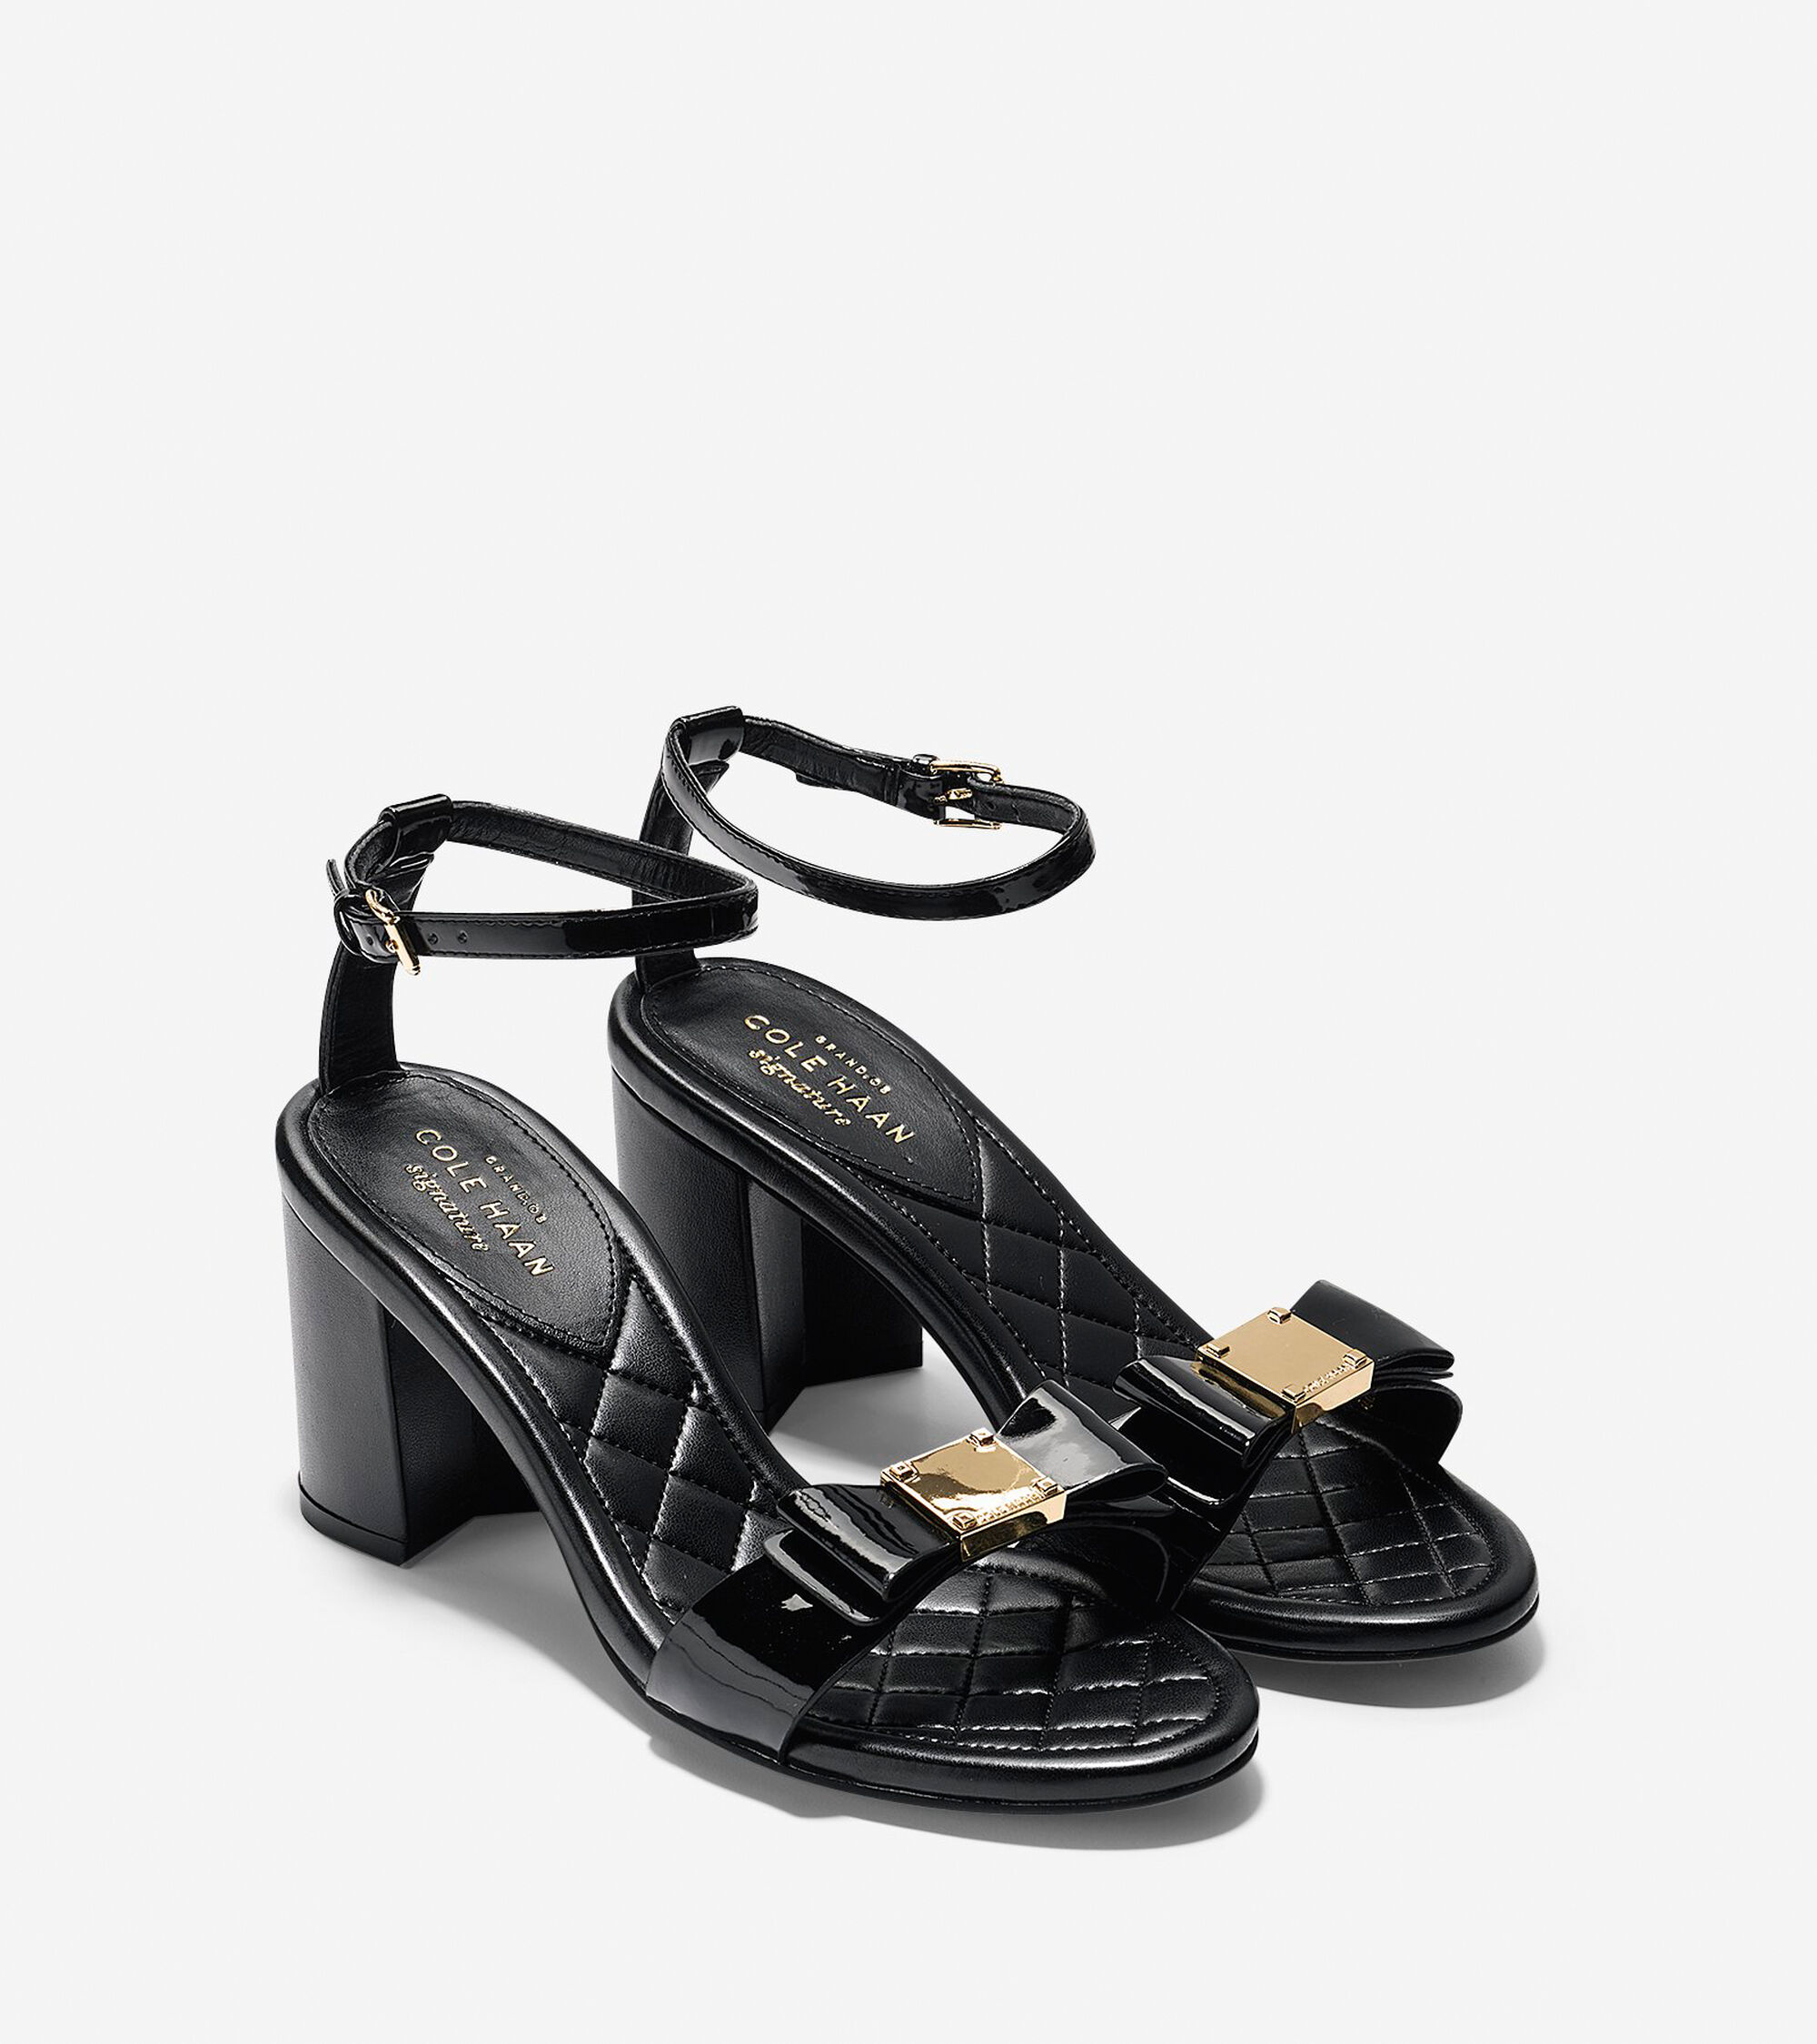 68303d6a42d Tali Bow High Sandals (65mm) in Black Patent